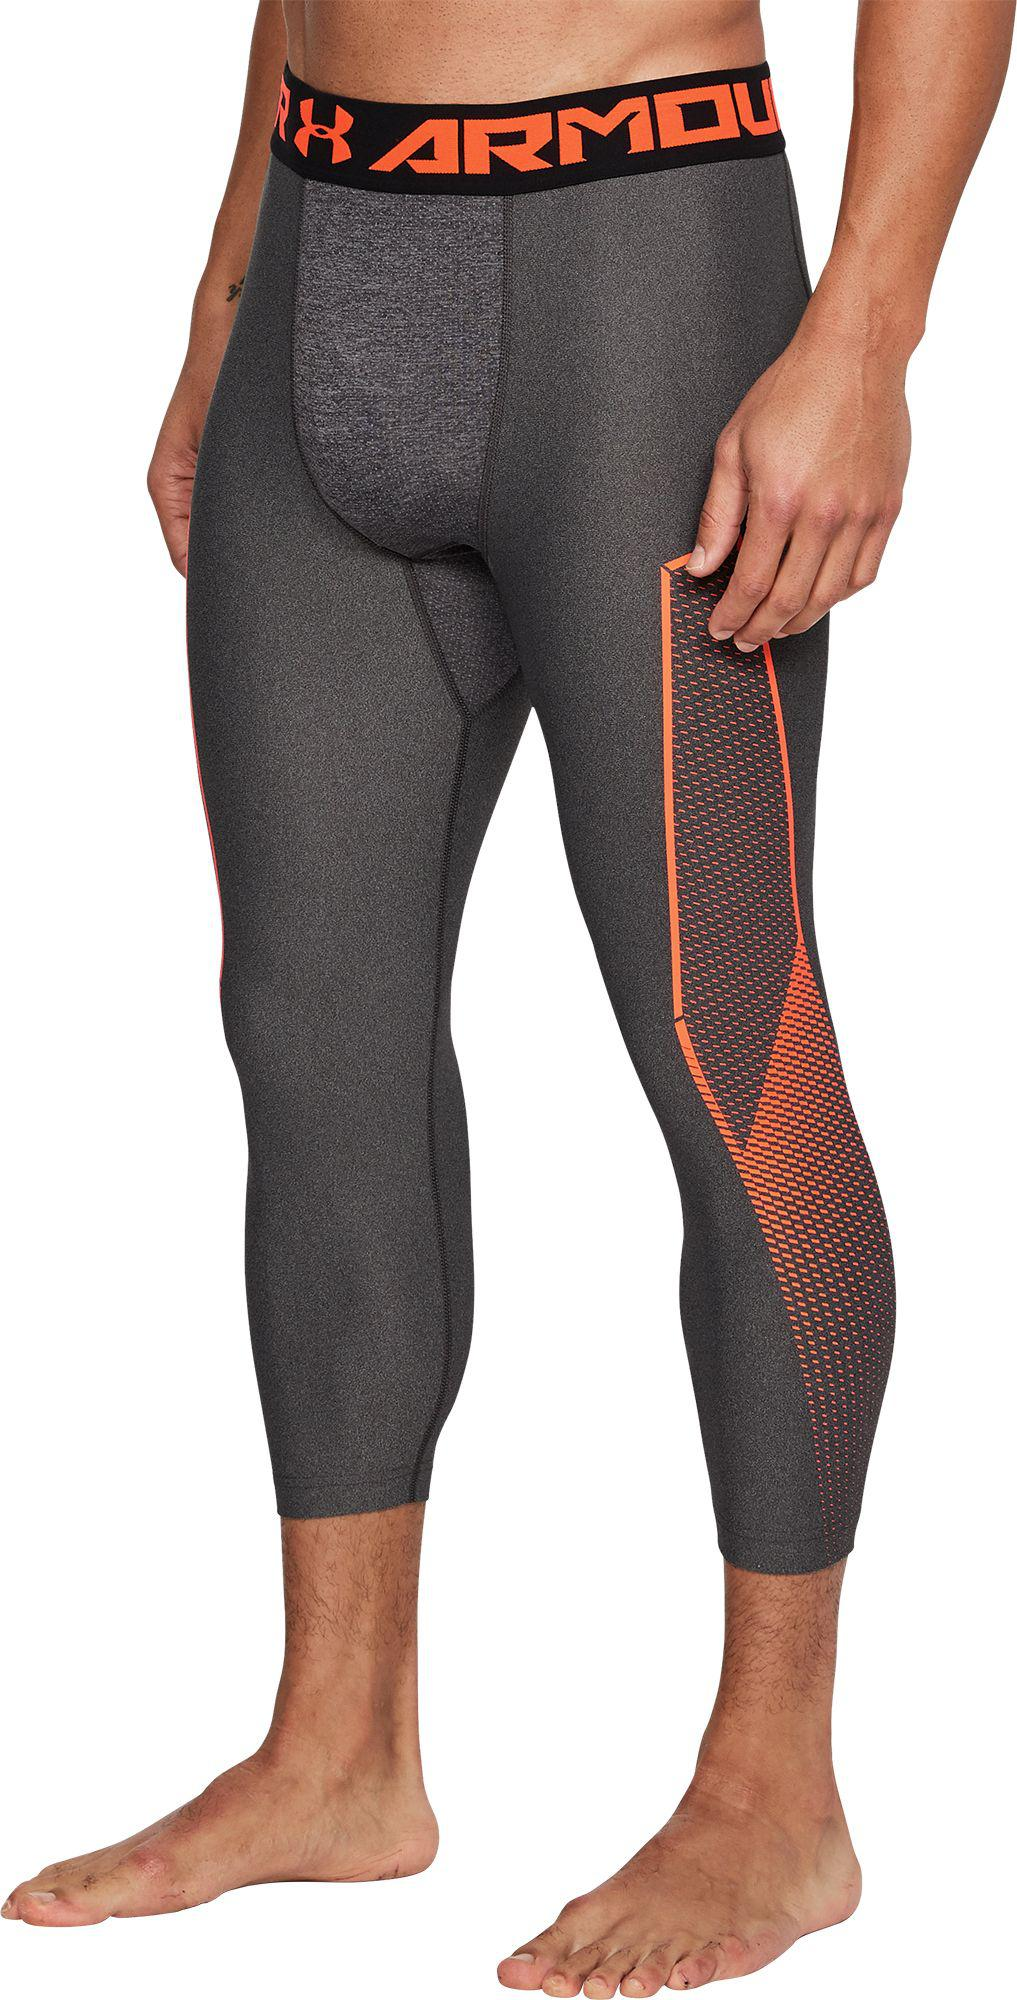 e9db3e7fc40fc Under Armour - Gray Heatgear Armour Graphic 3 4 Length Tights for Men - Lyst